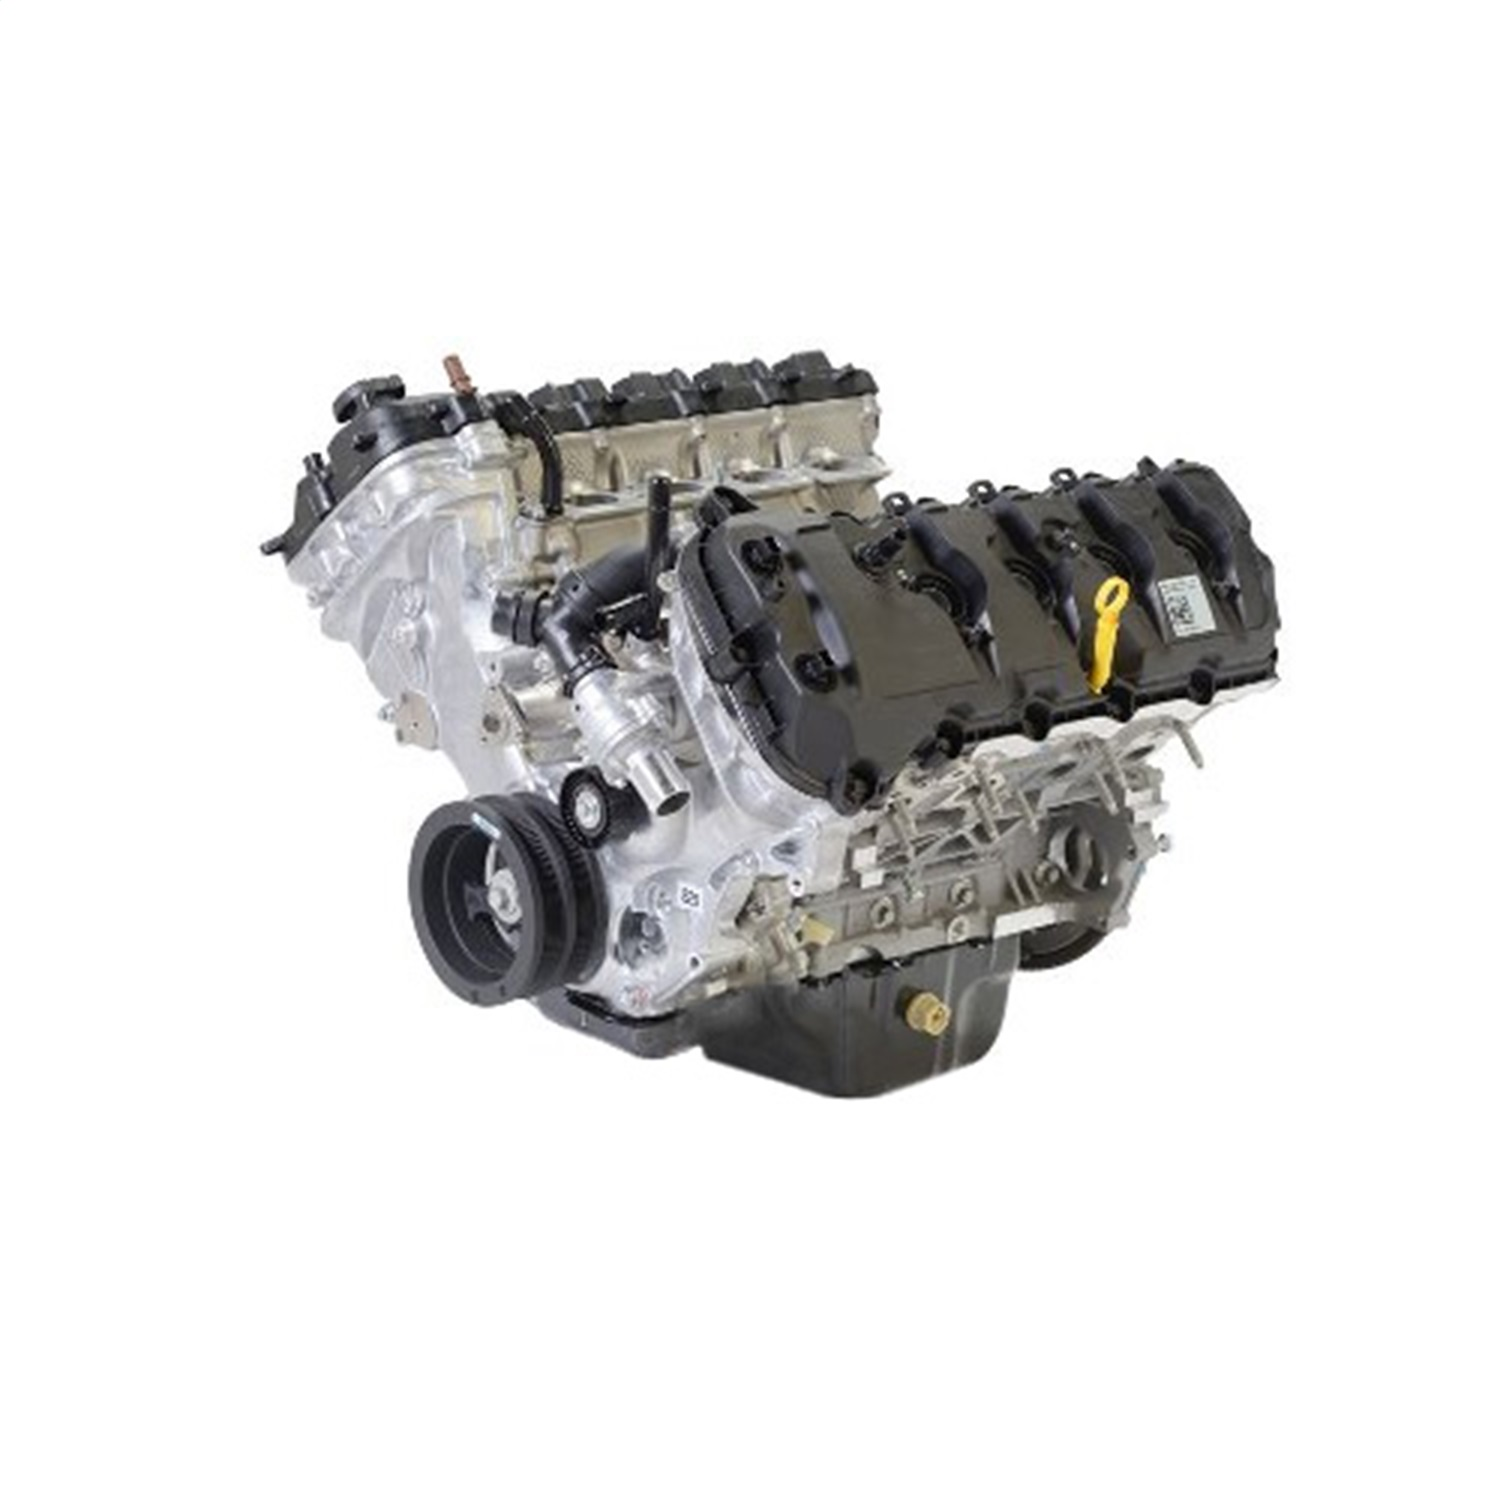 Ford Performance Parts M-6006-M50C Coyote Production Engine Block